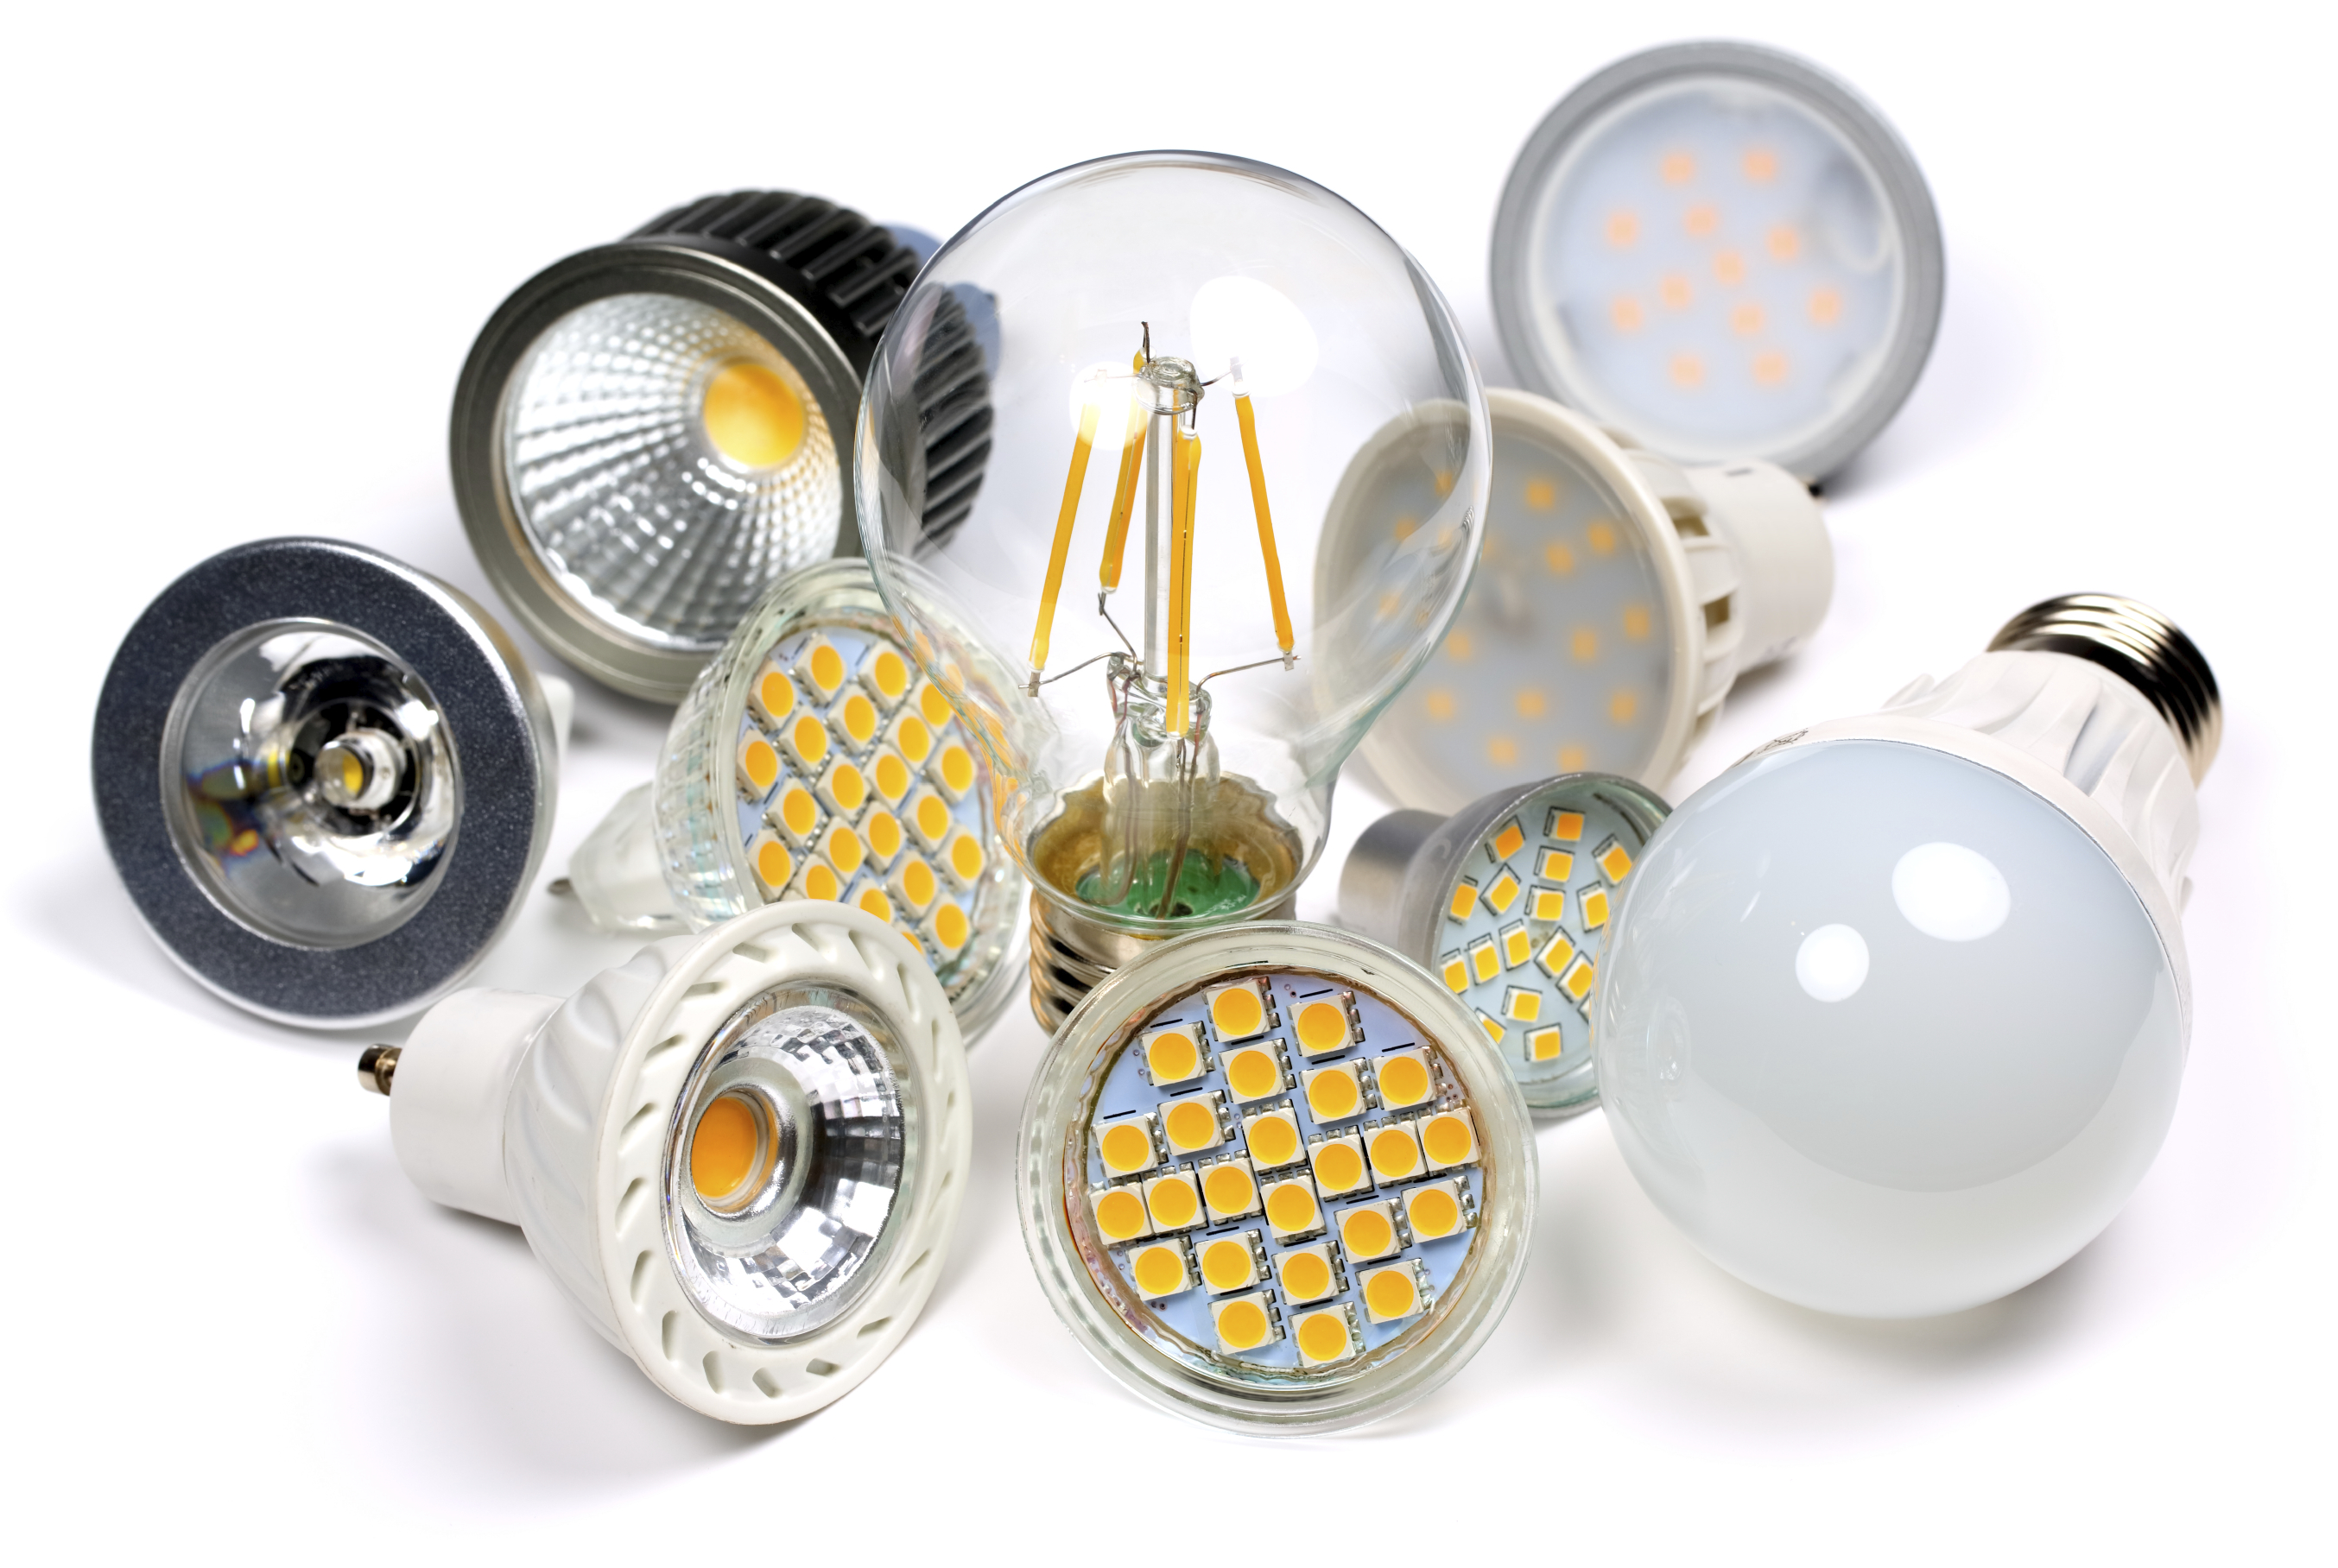 selection of light bulbs on a white background